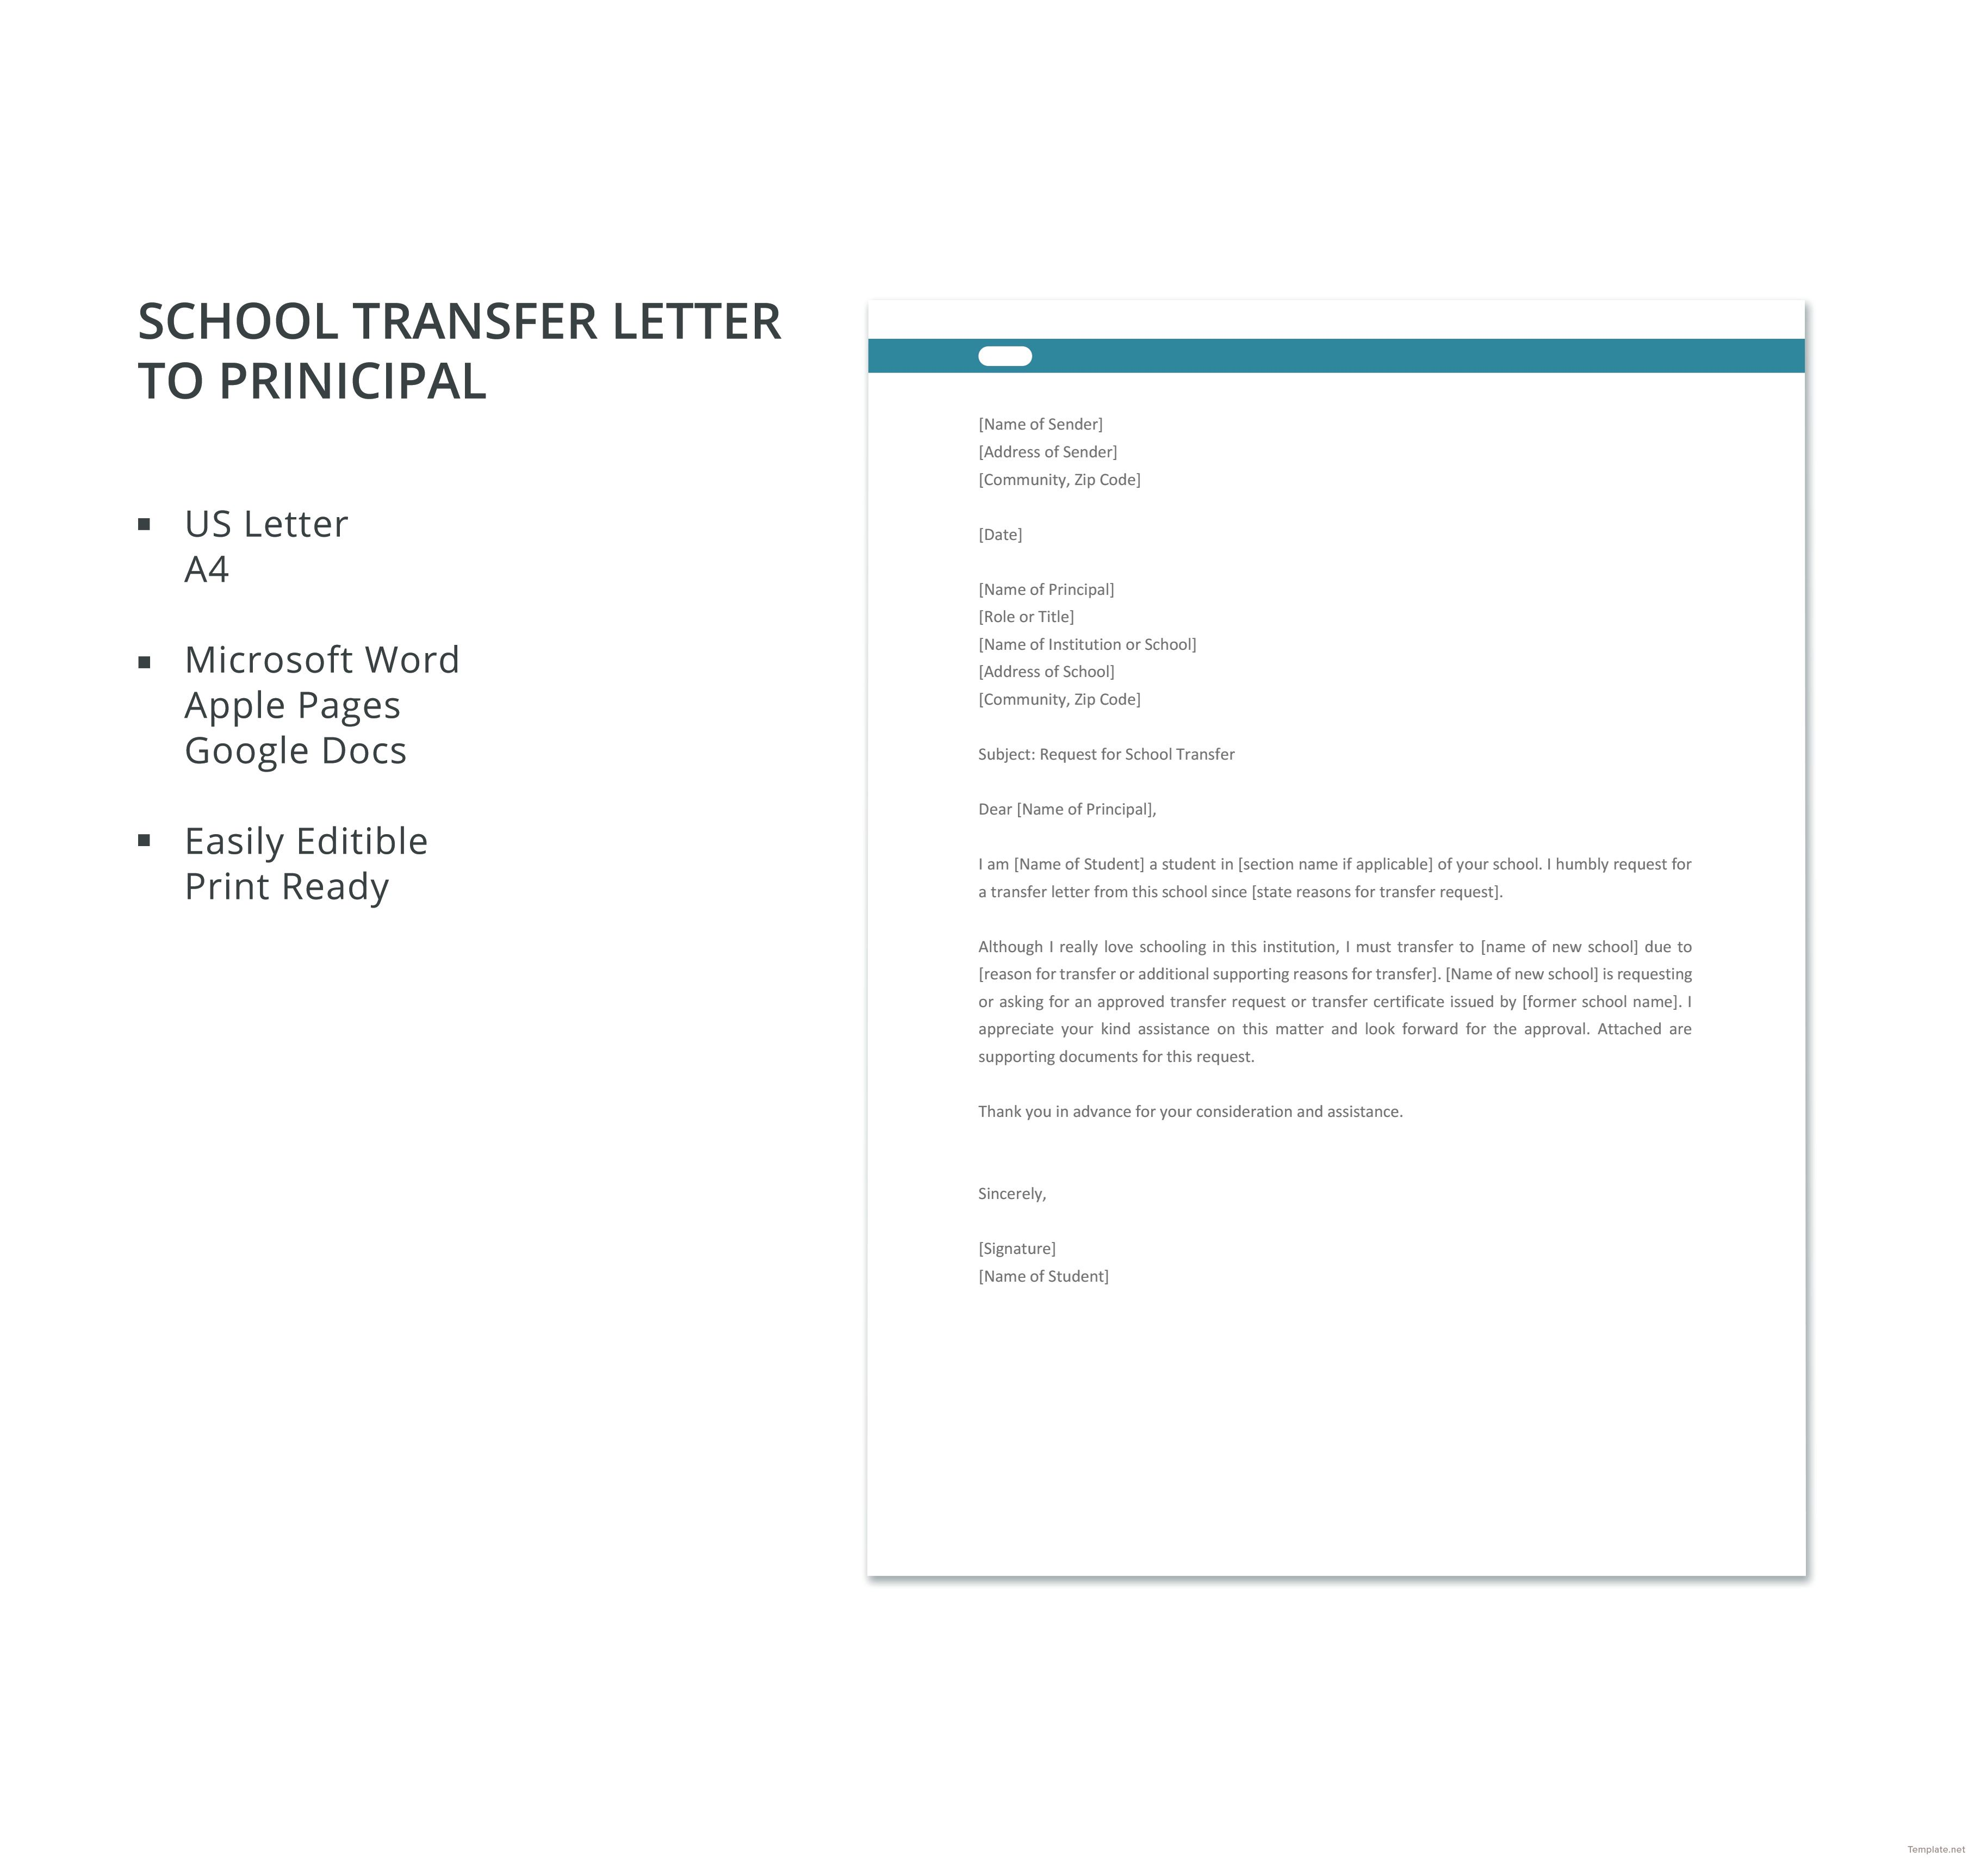 Free school transfer letter to principal business letter